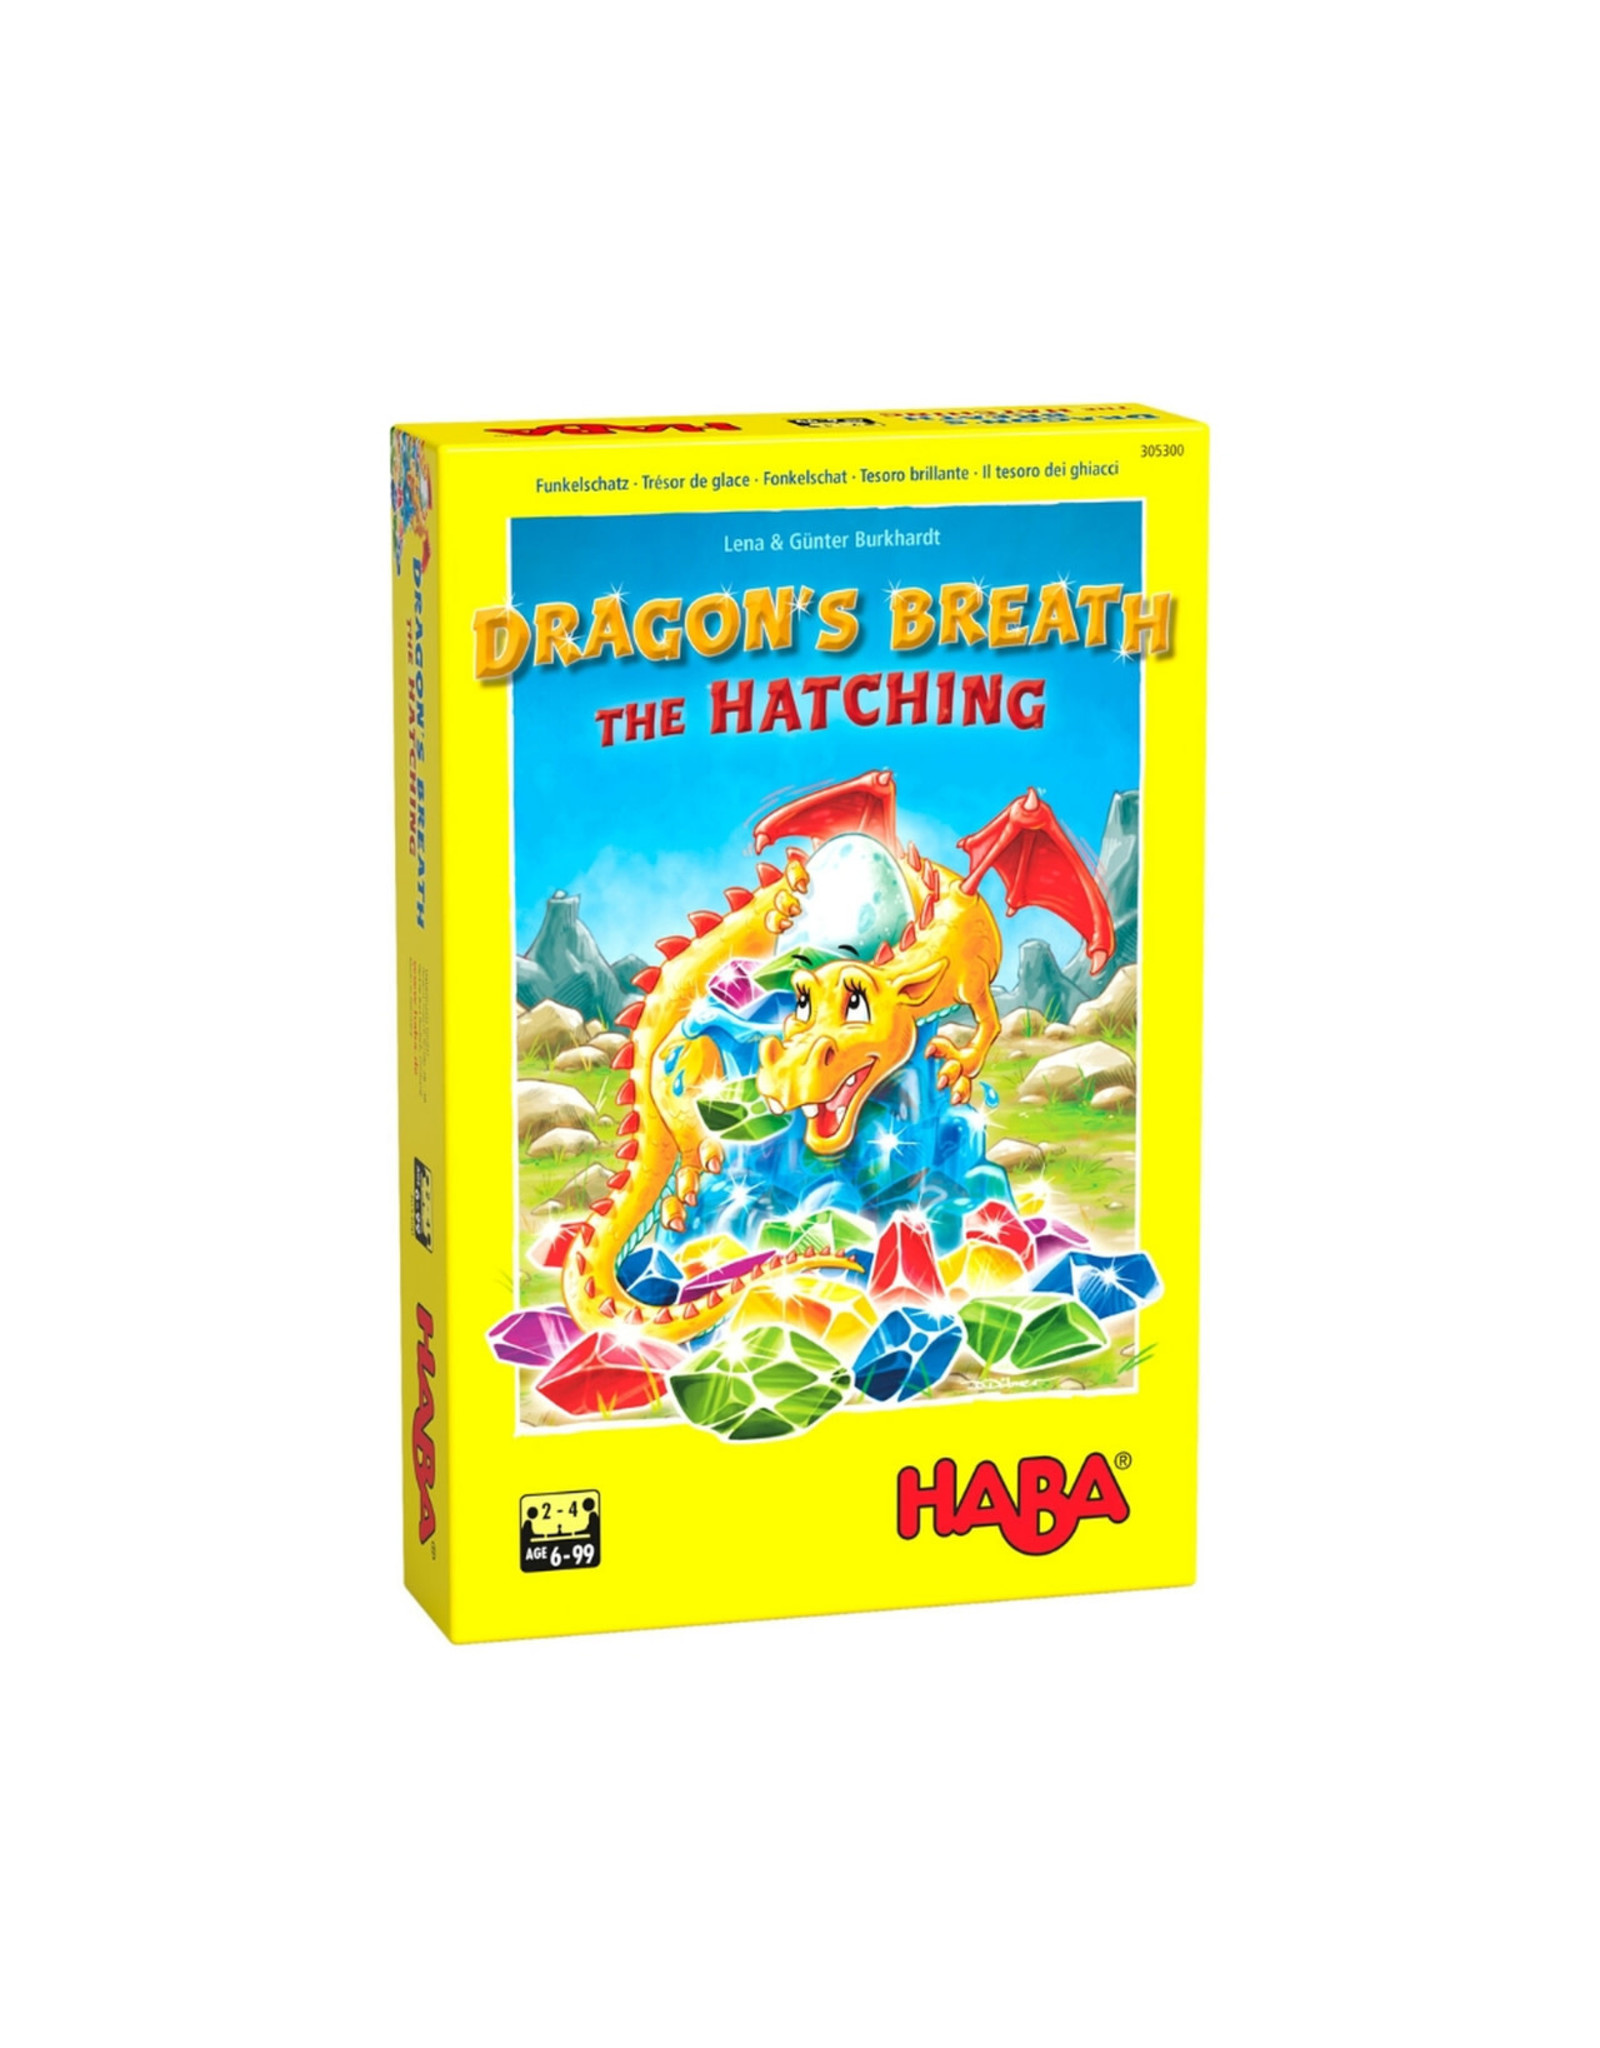 Haba Dragon's Breath, The Hatching